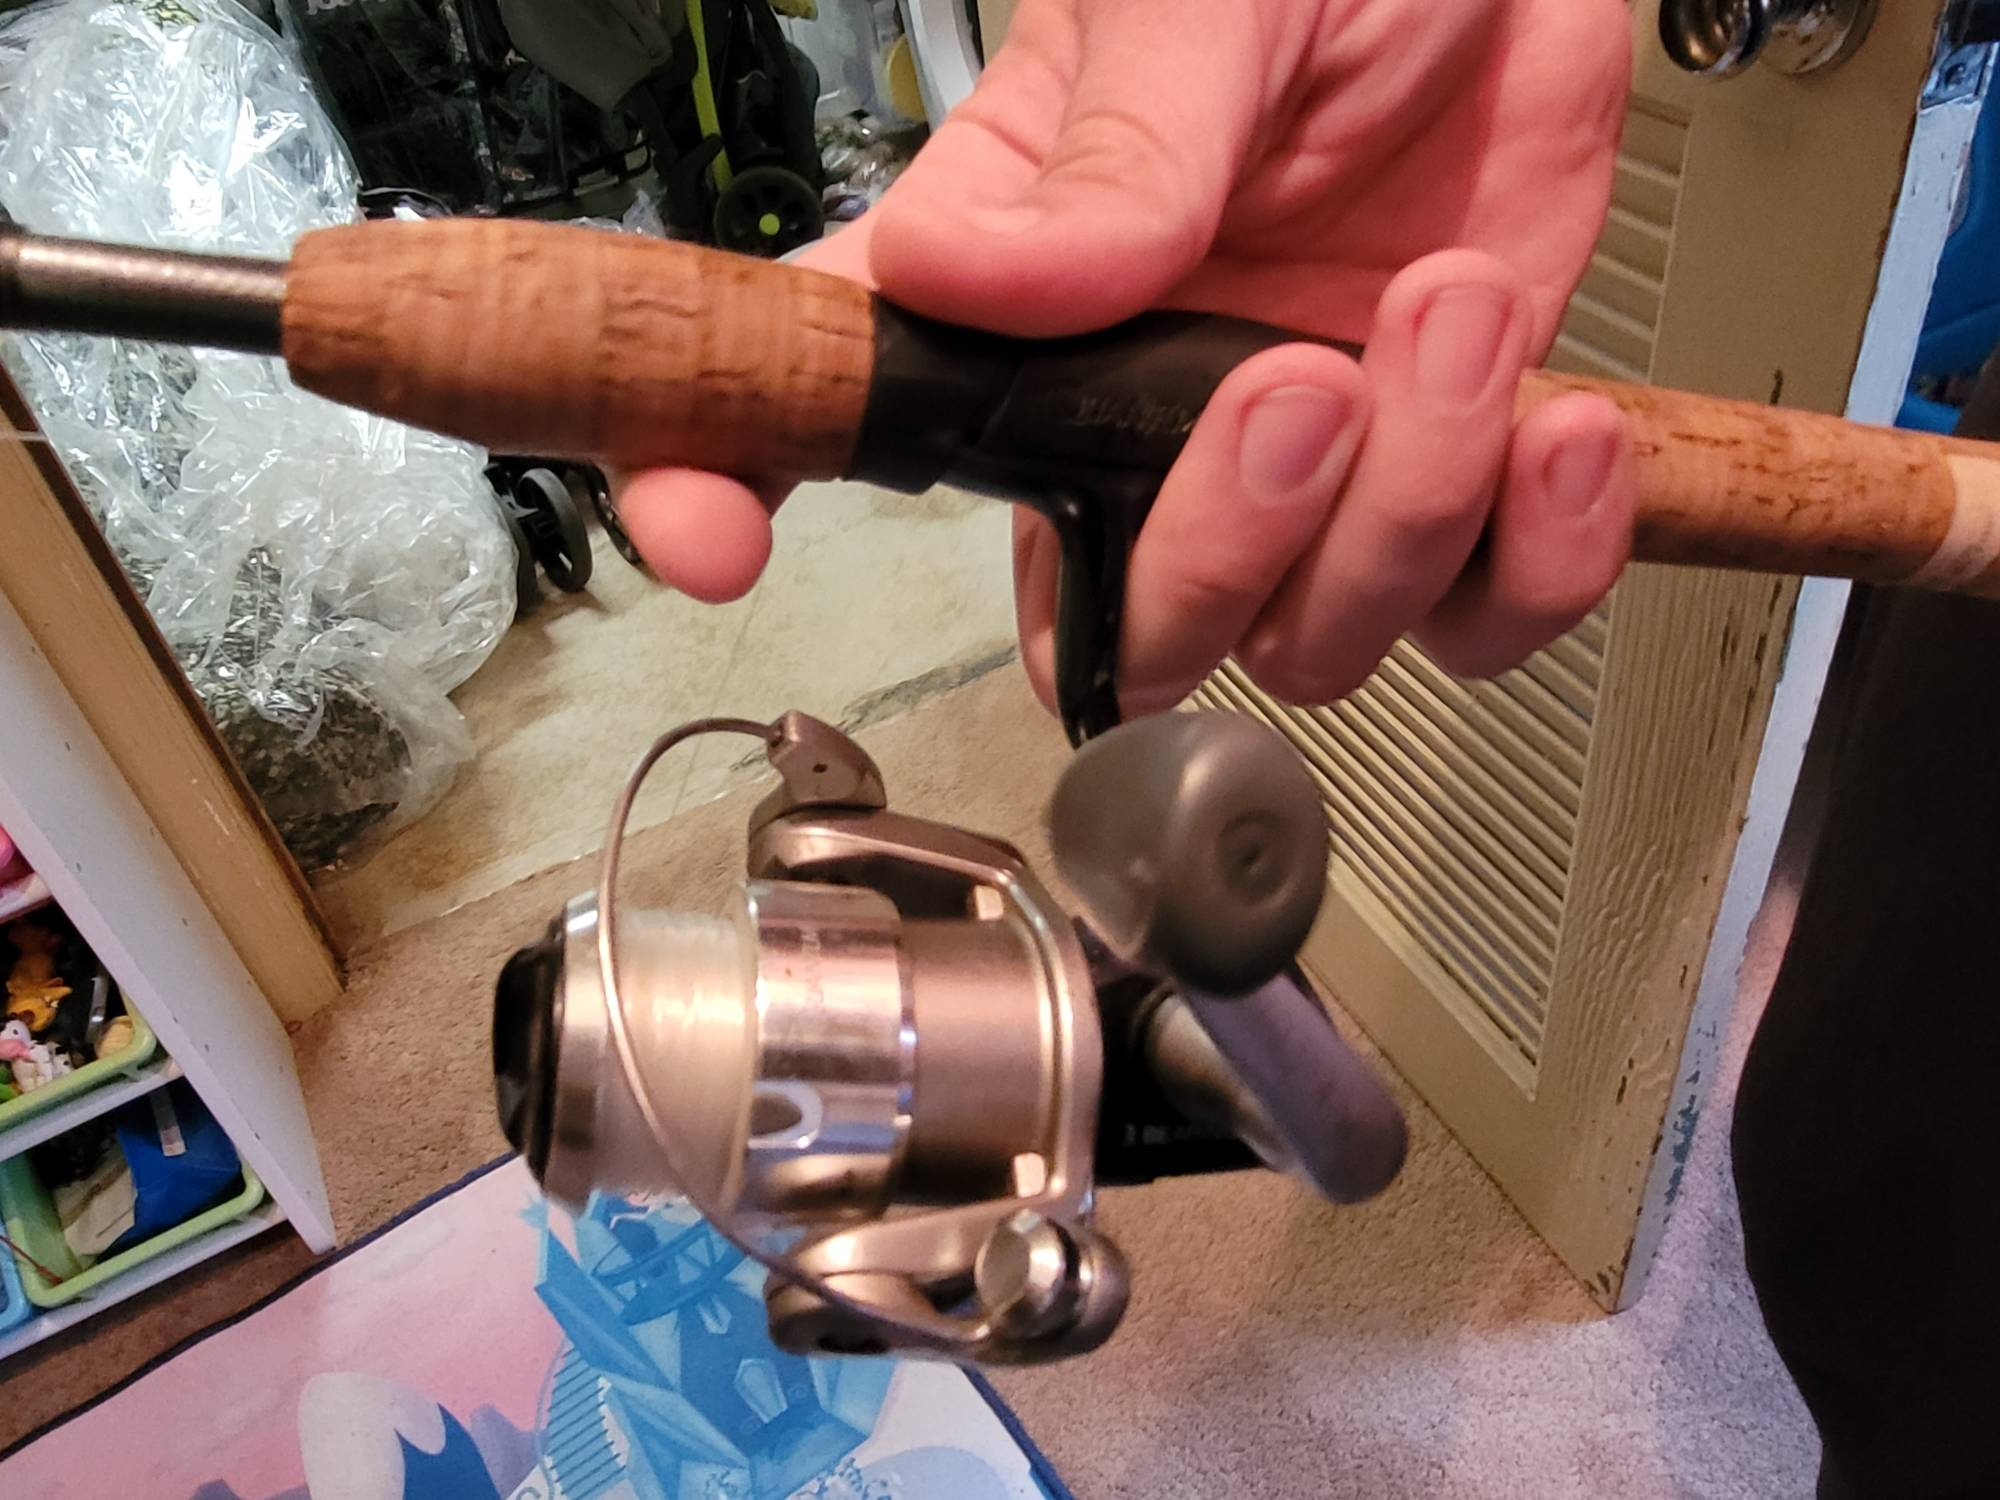 hand demonstrating one-hand cast on spinning reel